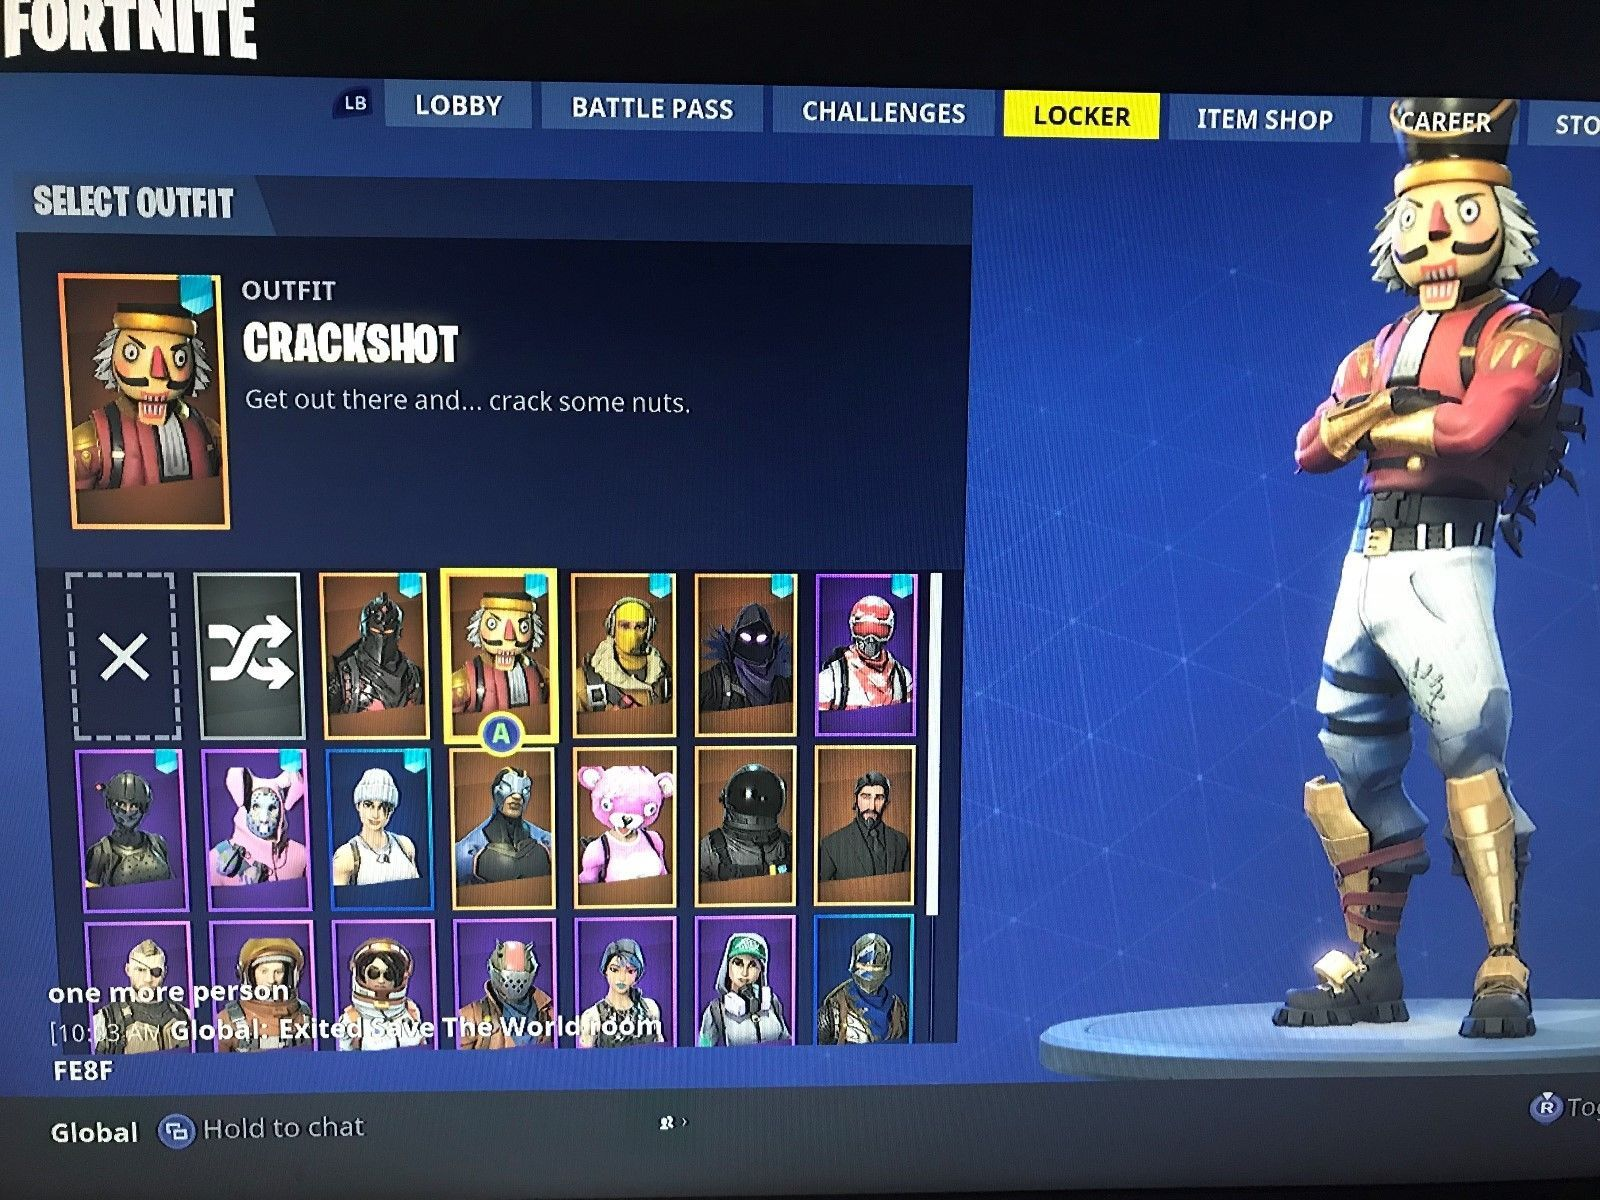 Fortnite Account |Xbox One| 21 Skins, Save the World PL23